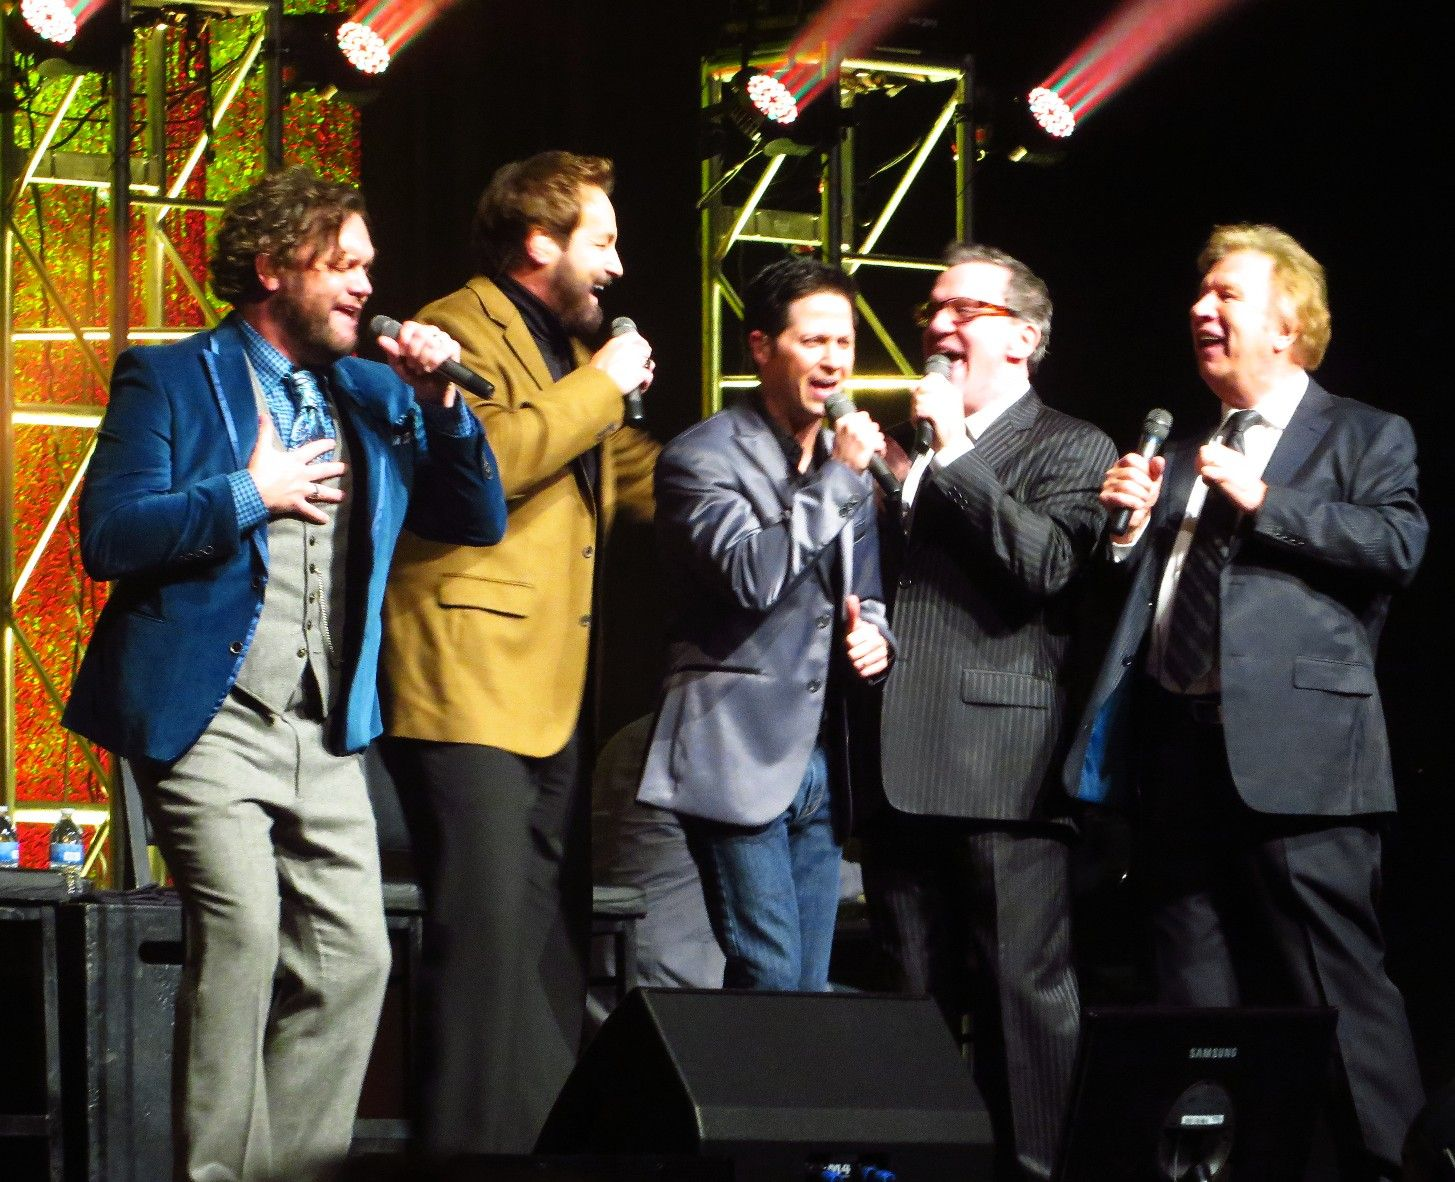 Michael English & Gaither Vocal Band